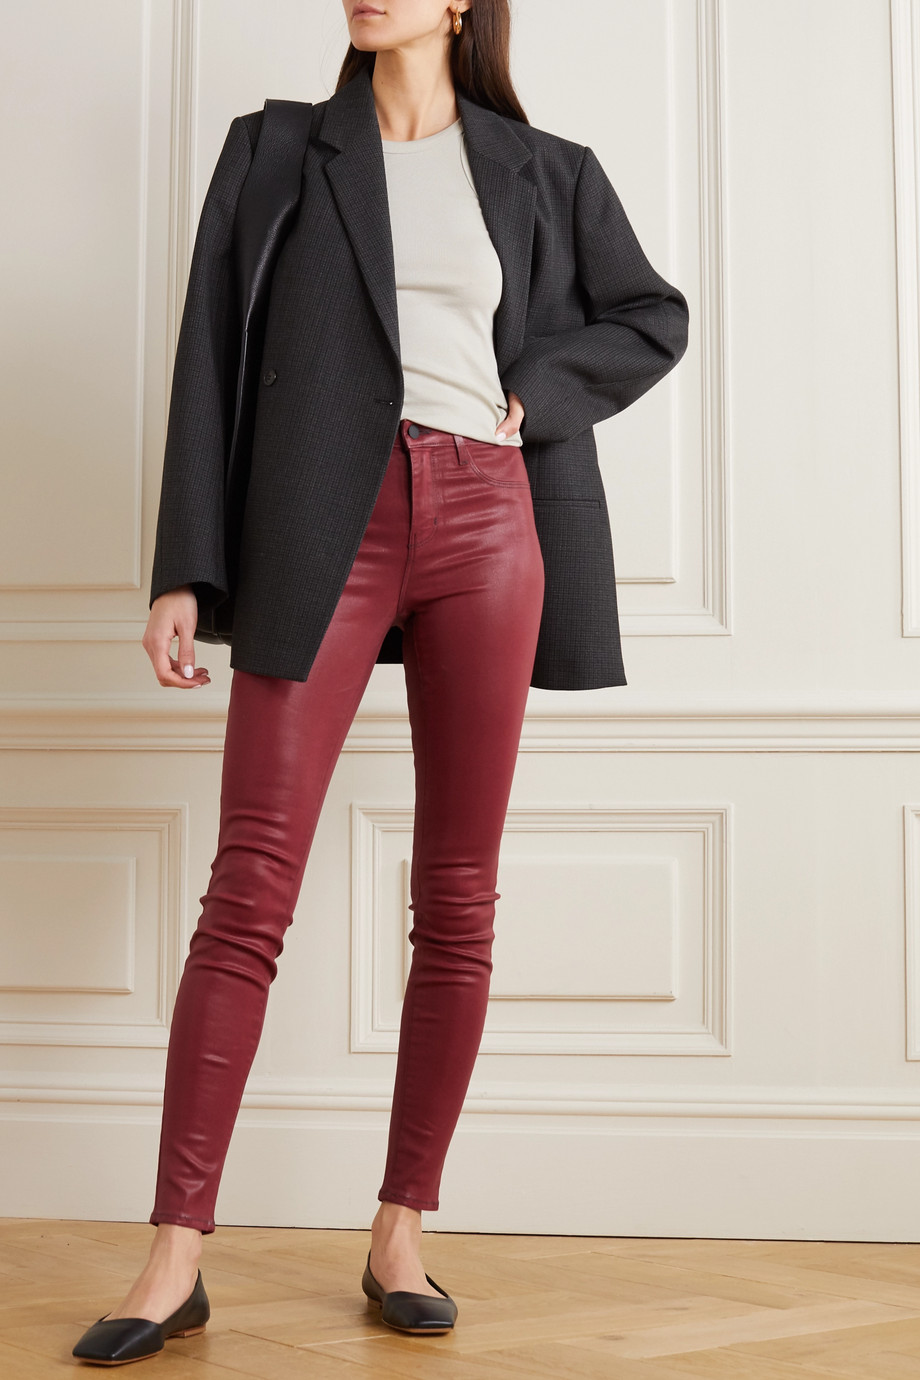 L'AGENCE Marguerite coated high-rise skinny jeans